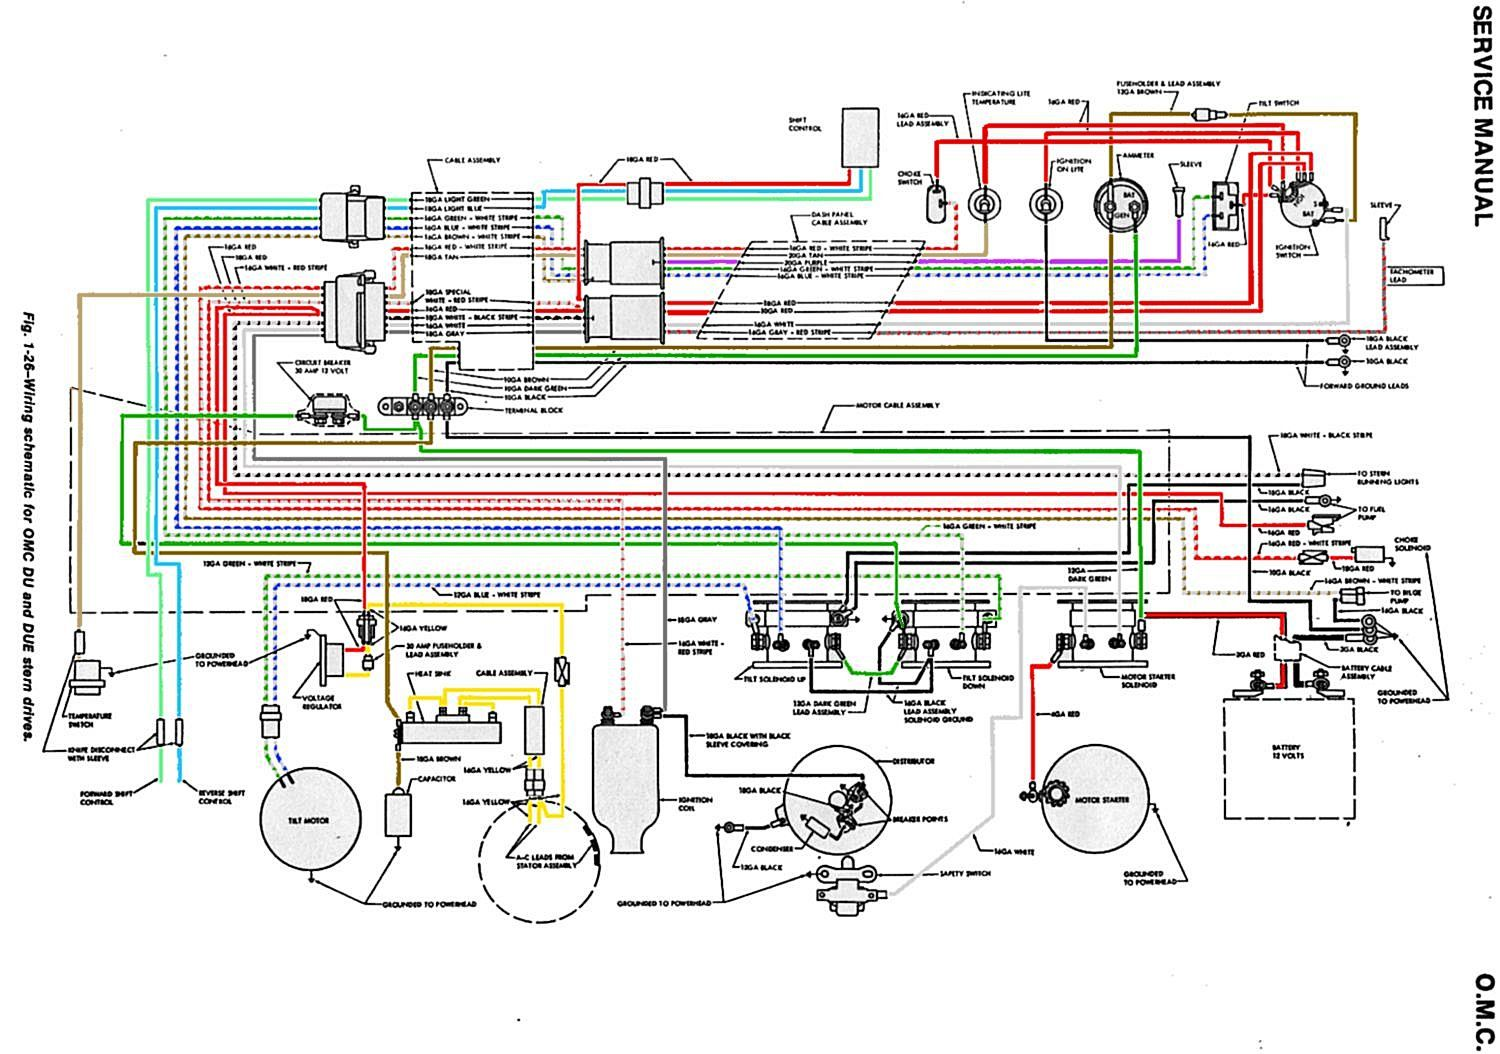 yamaha outboard harness wiring diagram #3 Outboard Tach Wiring Diagram yamaha outboard harness wiring diagram